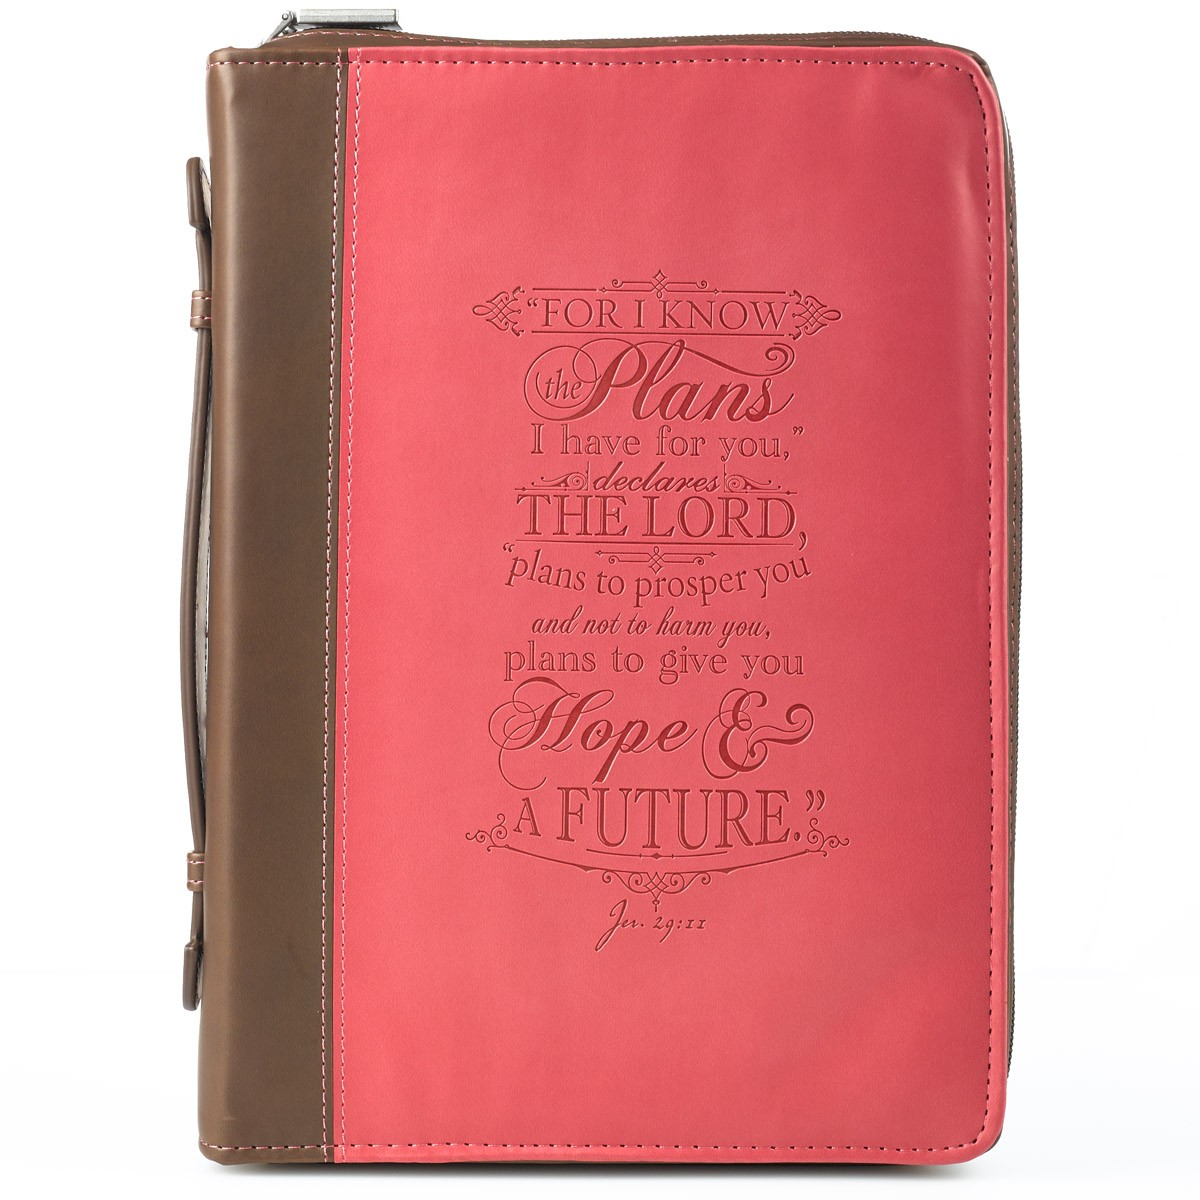 I-know-the-plans-in-pink-and-brown-Jeremiah-29-11-Bible-Cover-Size-Medium